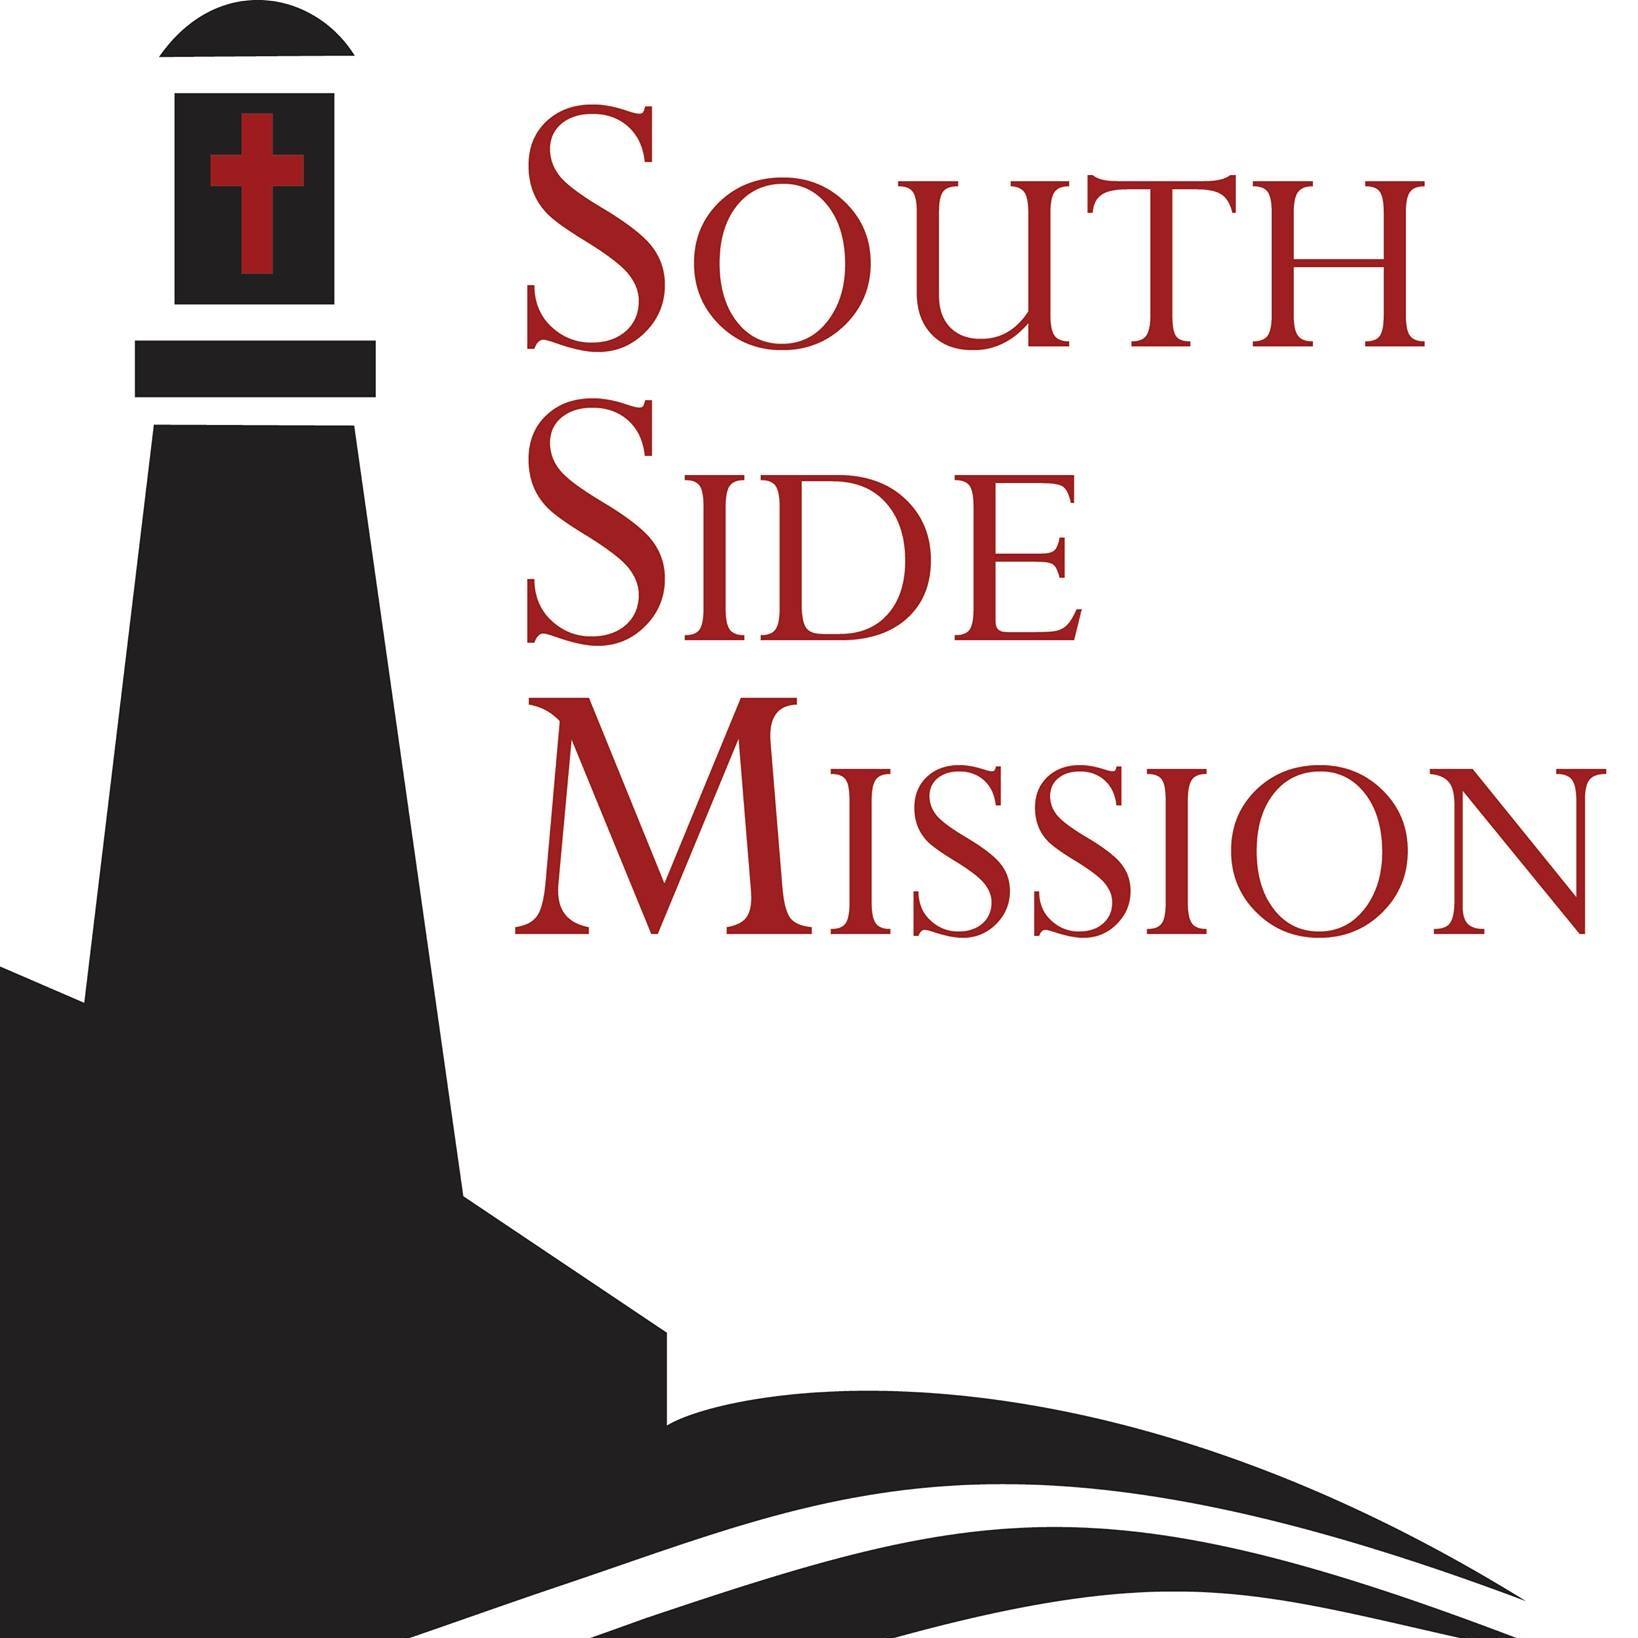 South Side Mission